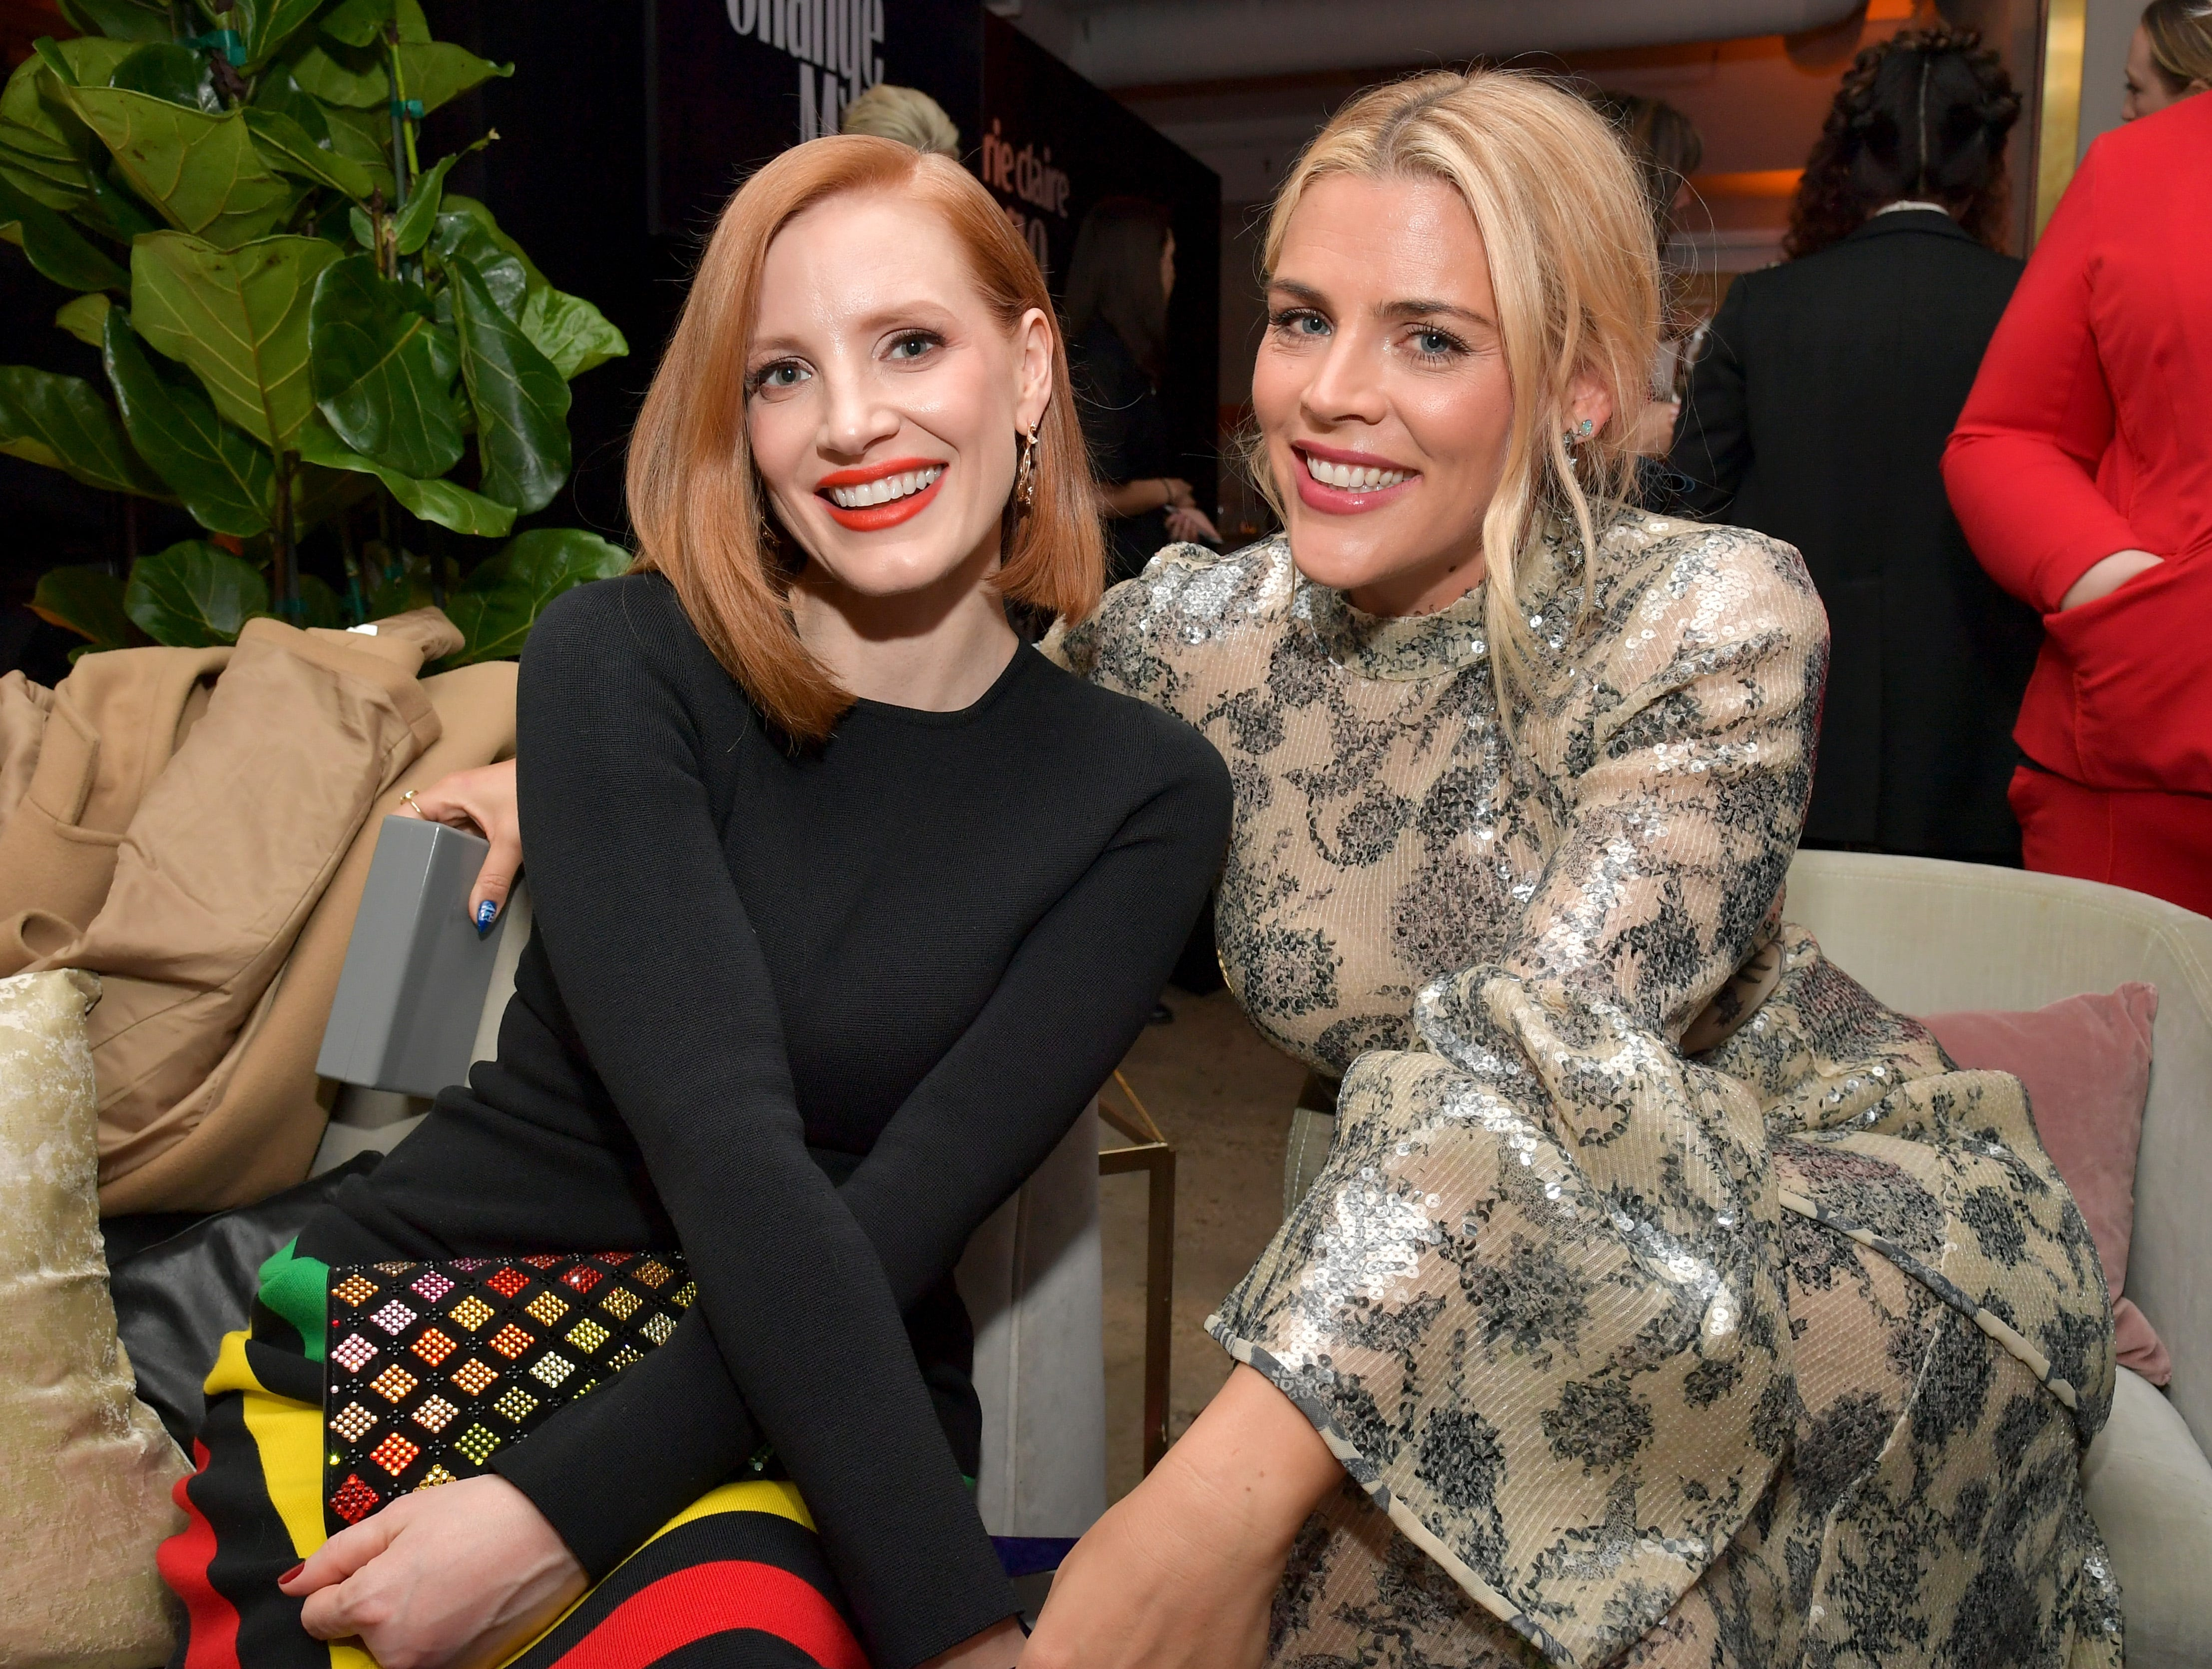 LOS ANGELES, CA - MARCH 12:  Jessica Chastain and Busy Philipps are seen as Marie Claire honors Hollywood's Change Makers on March 12, 2019 in Los Angeles, California.  (Photo by Amy Sussman/Getty Images for Marie Claire) ORG XMIT: 775306367 ORIG FILE ID: 1130157928